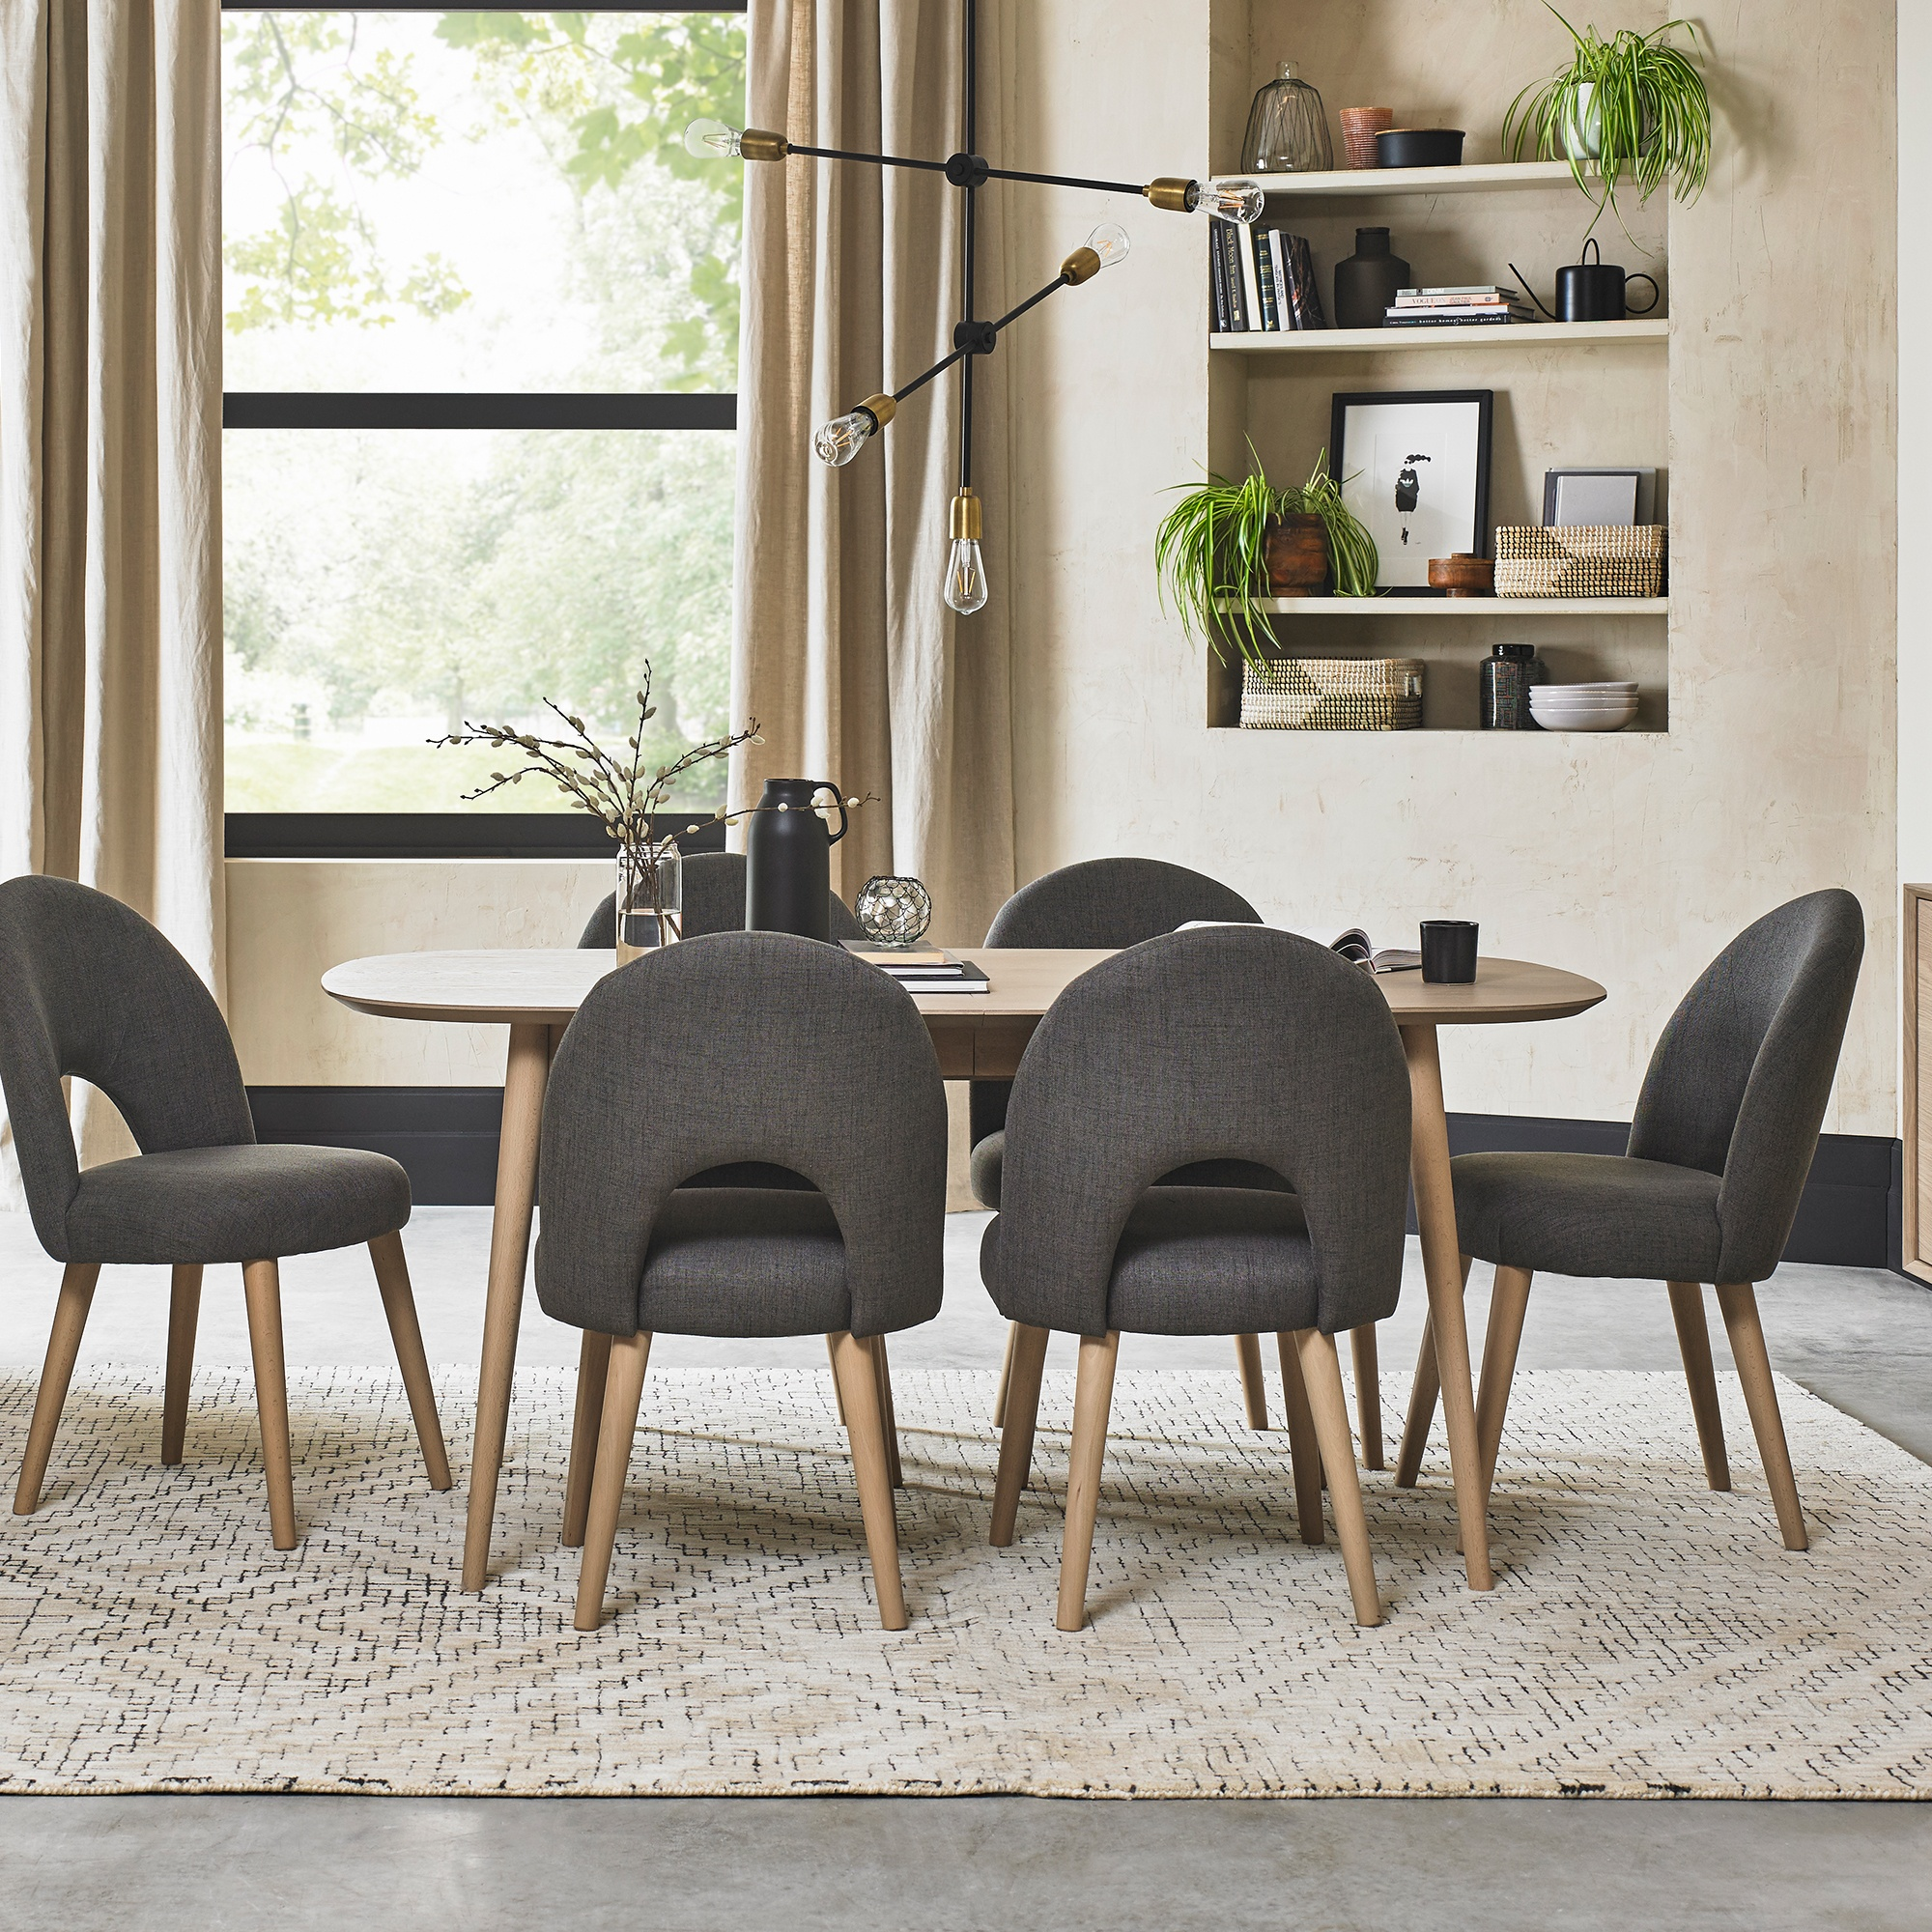 Cookes Collection Fino Scandi Oak Dining Table And 6 Chairs Dining Furniture